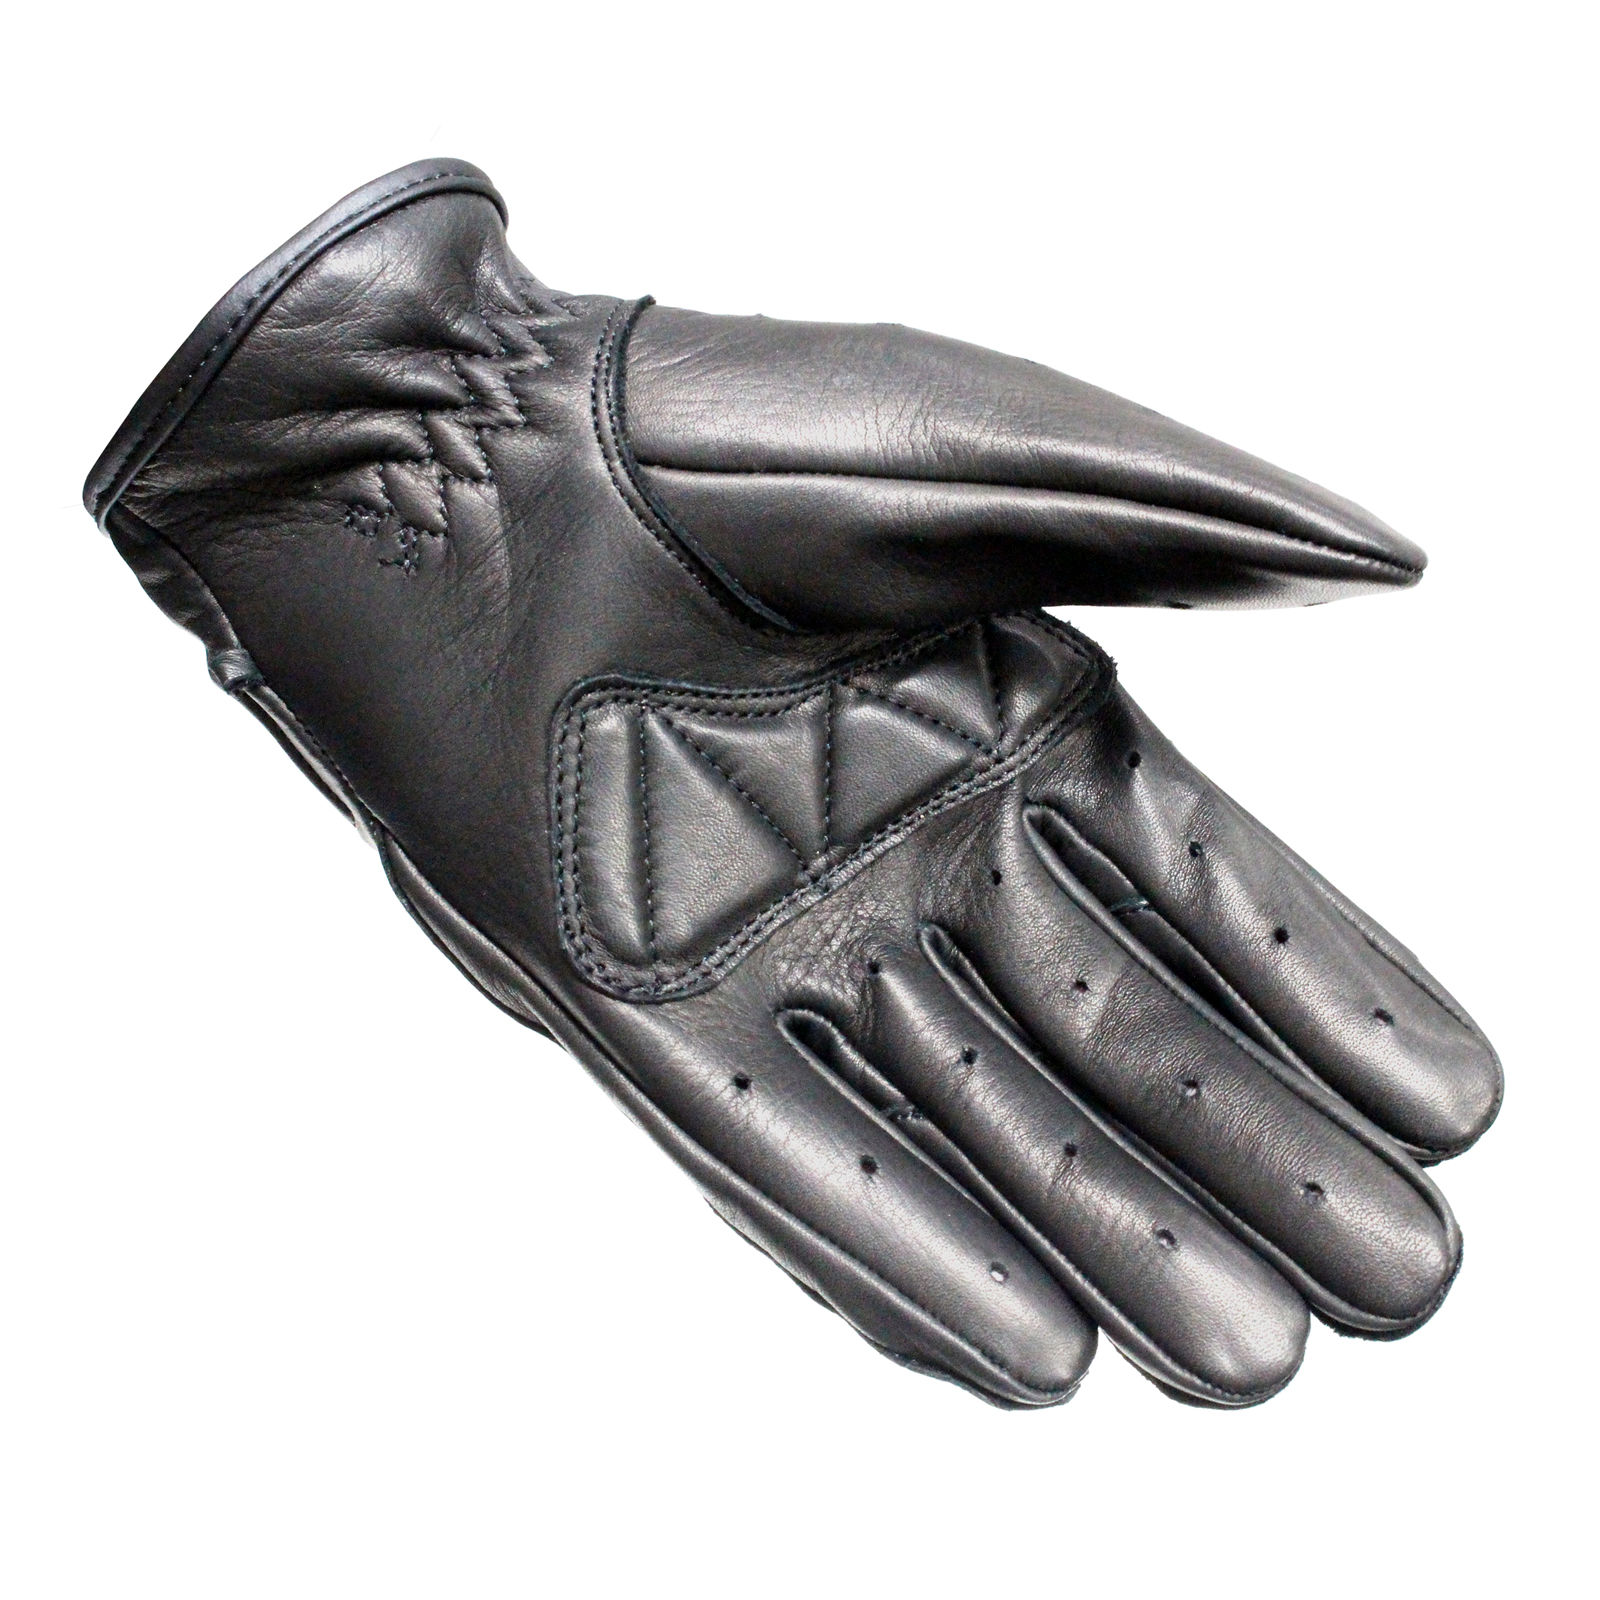 Motorcycle gloves made in pakistan - Black Static Leather Classic Vintage Fashion Motorcycle Motorbike